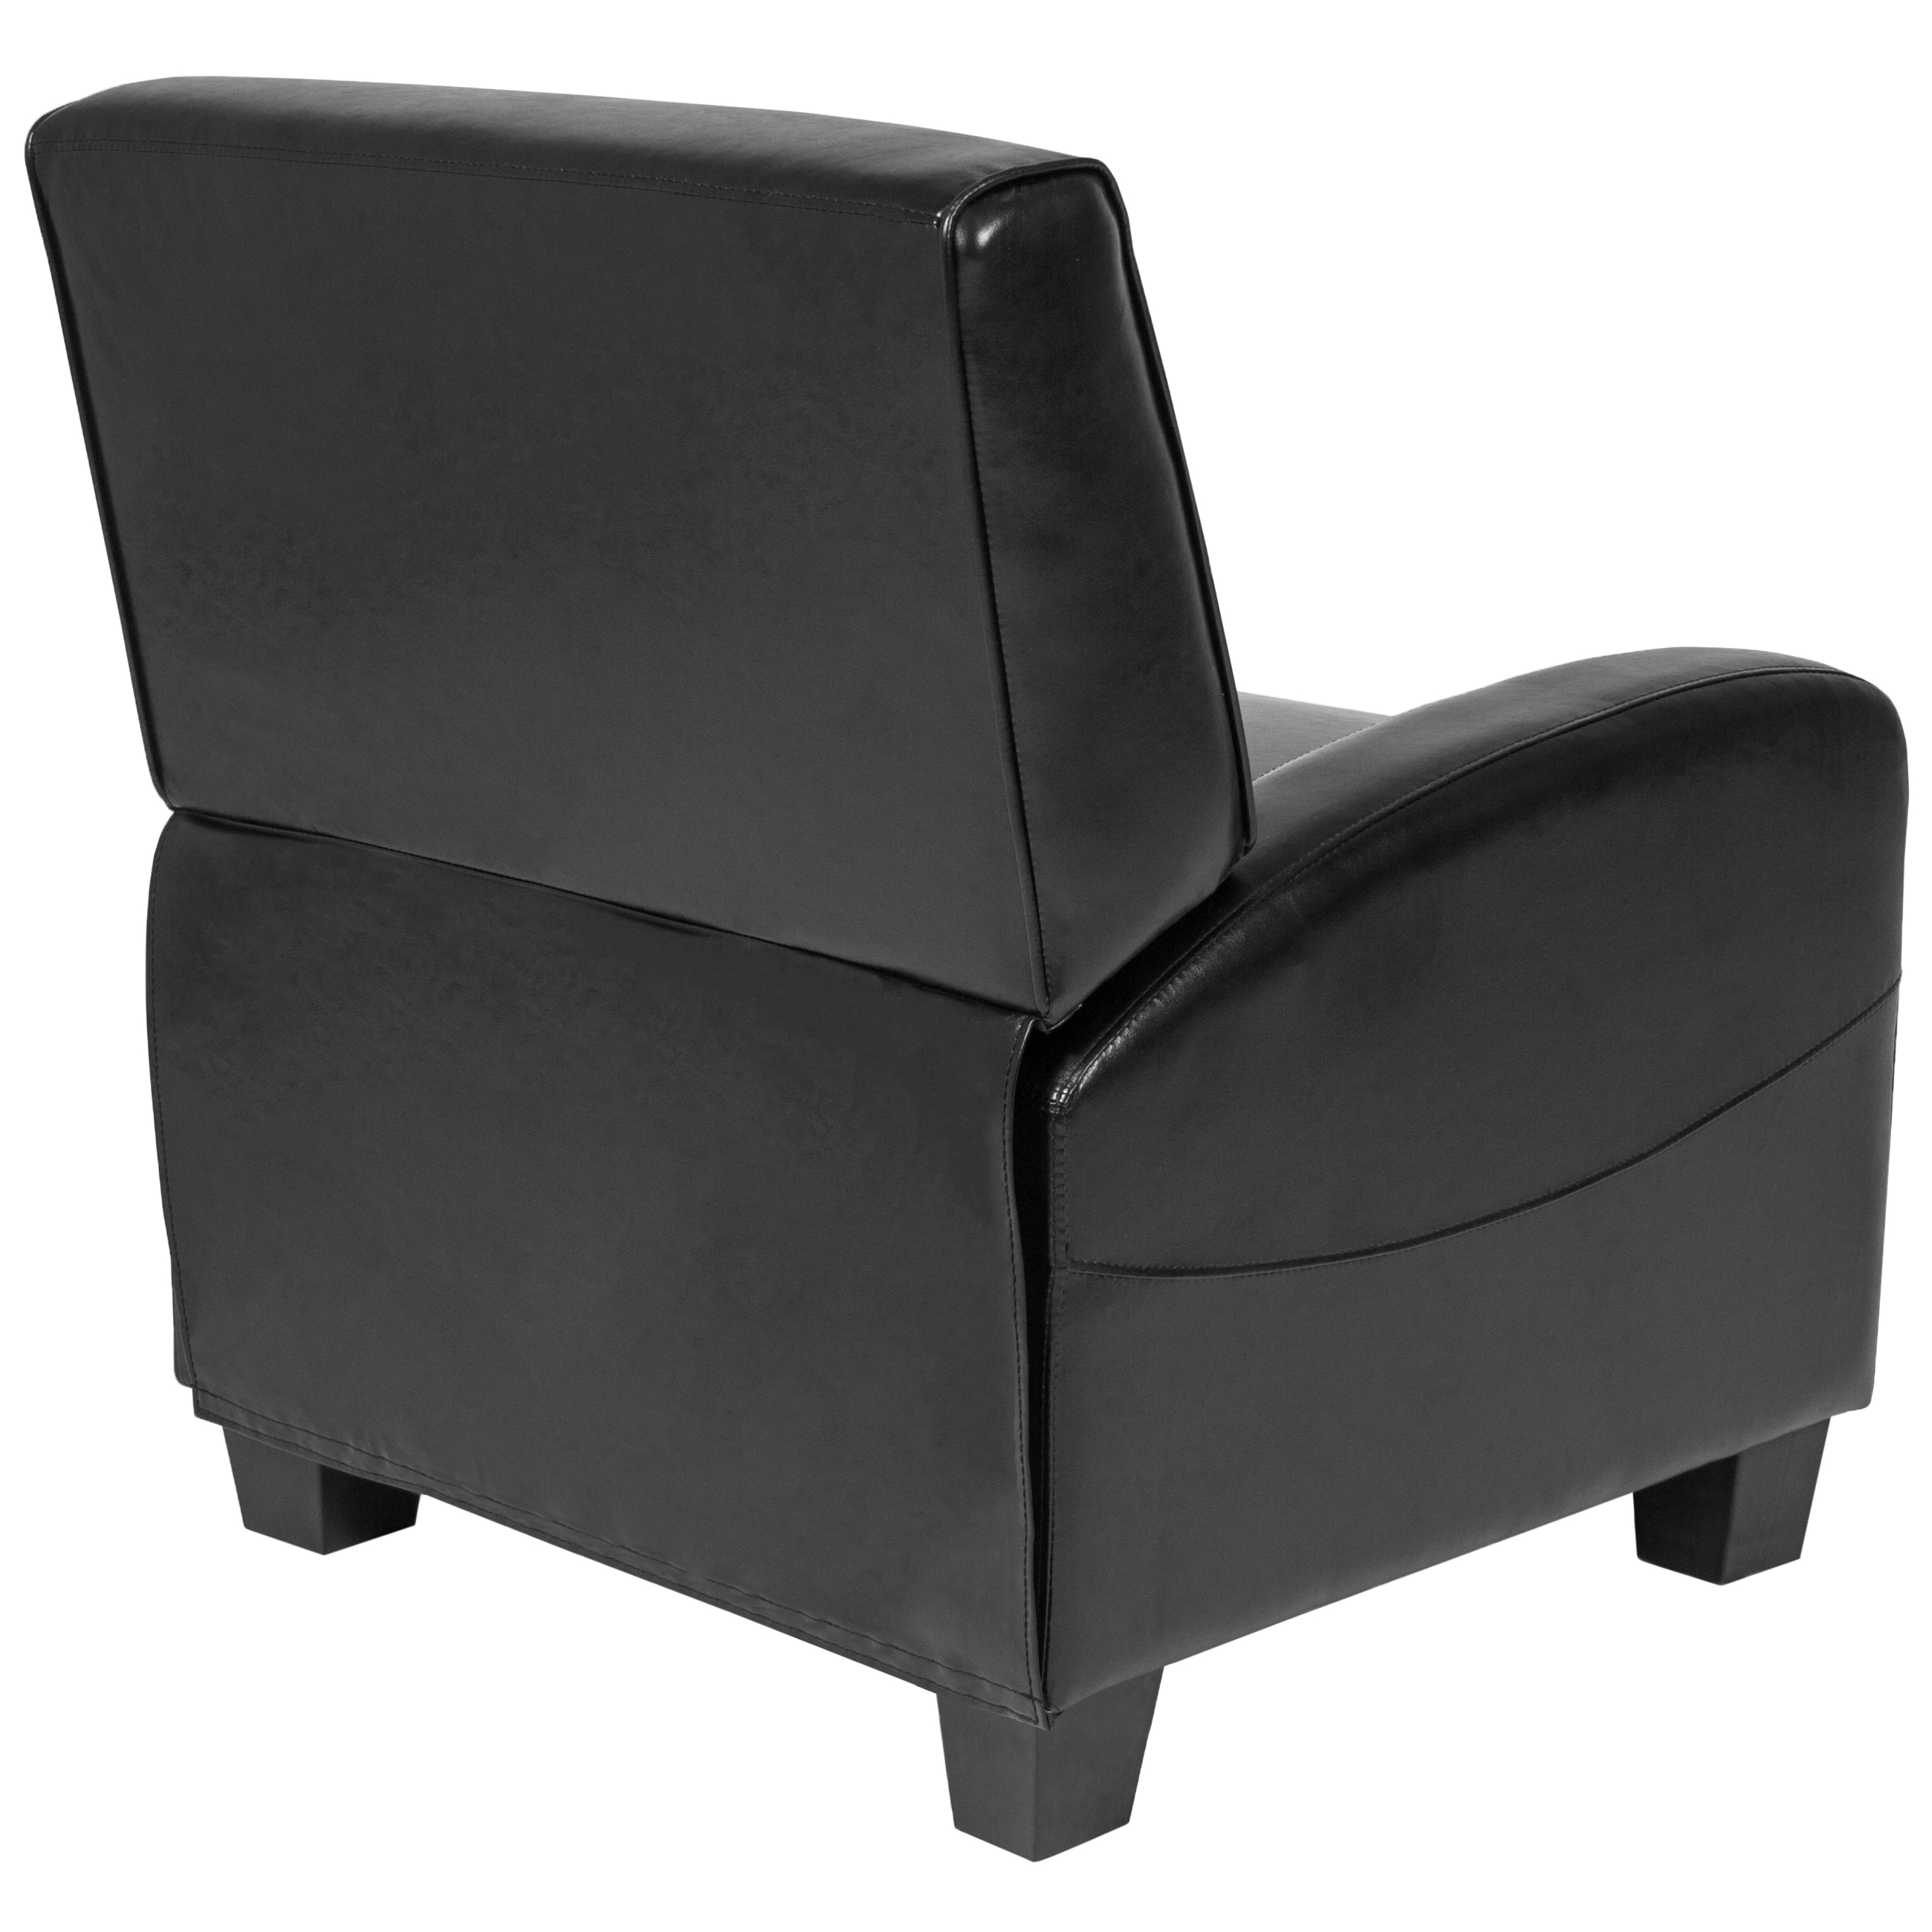 Best Choice Products Padded Upholstery Leather Home Theater Recliner Chair (Black)  sc 1 st  Walmart : recliners leather - islam-shia.org